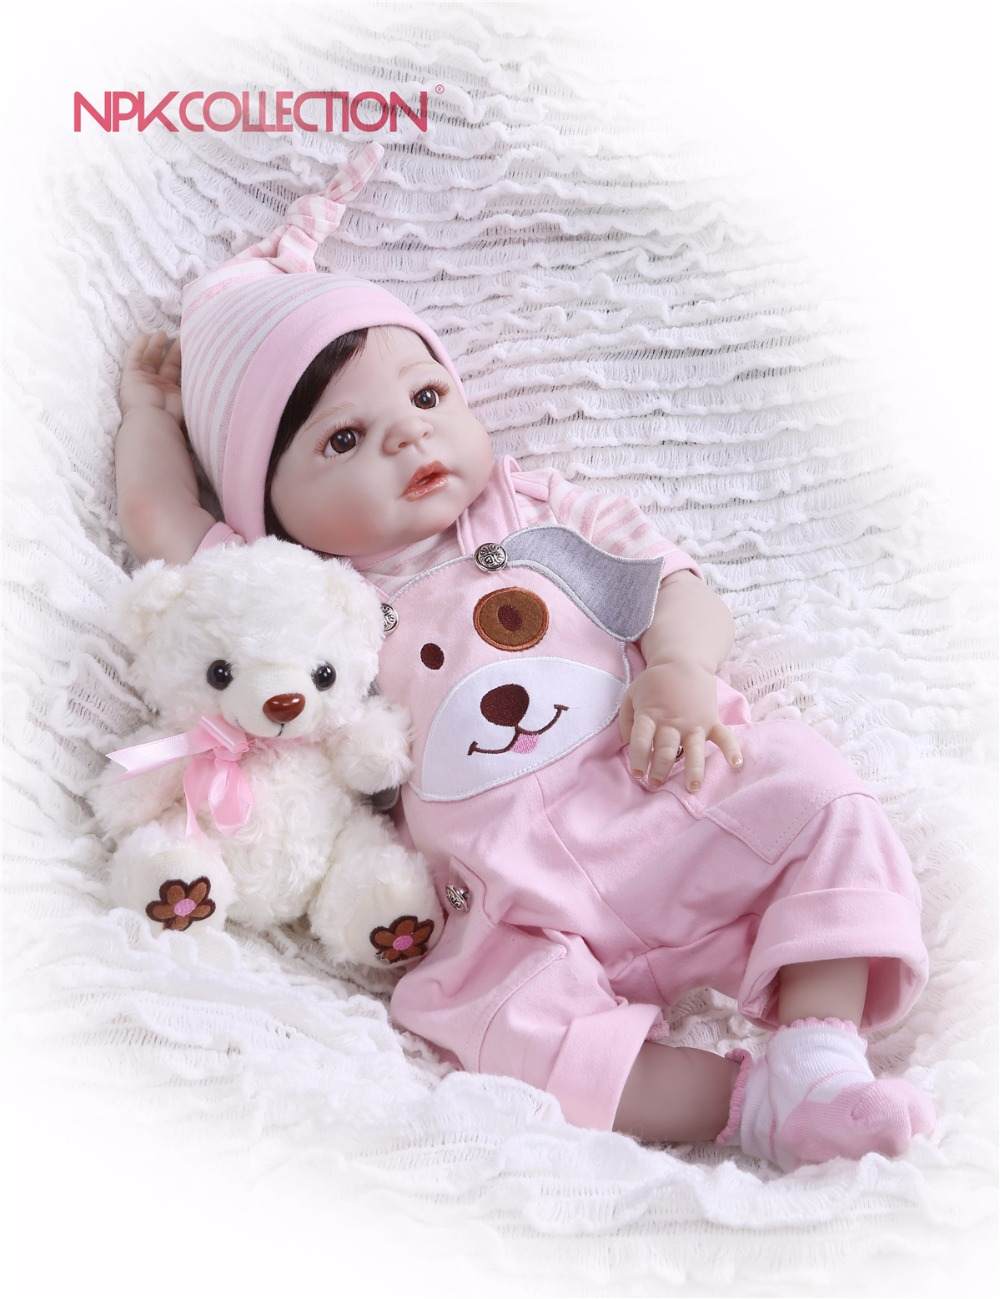 NPKCOLLECTION New Arrival pink Baby Doll Full Silicone Body Lifelike Bebes Reborn Princess Girl Doll Handmade Baby Toy Kid GiftsNPKCOLLECTION New Arrival pink Baby Doll Full Silicone Body Lifelike Bebes Reborn Princess Girl Doll Handmade Baby Toy Kid Gifts